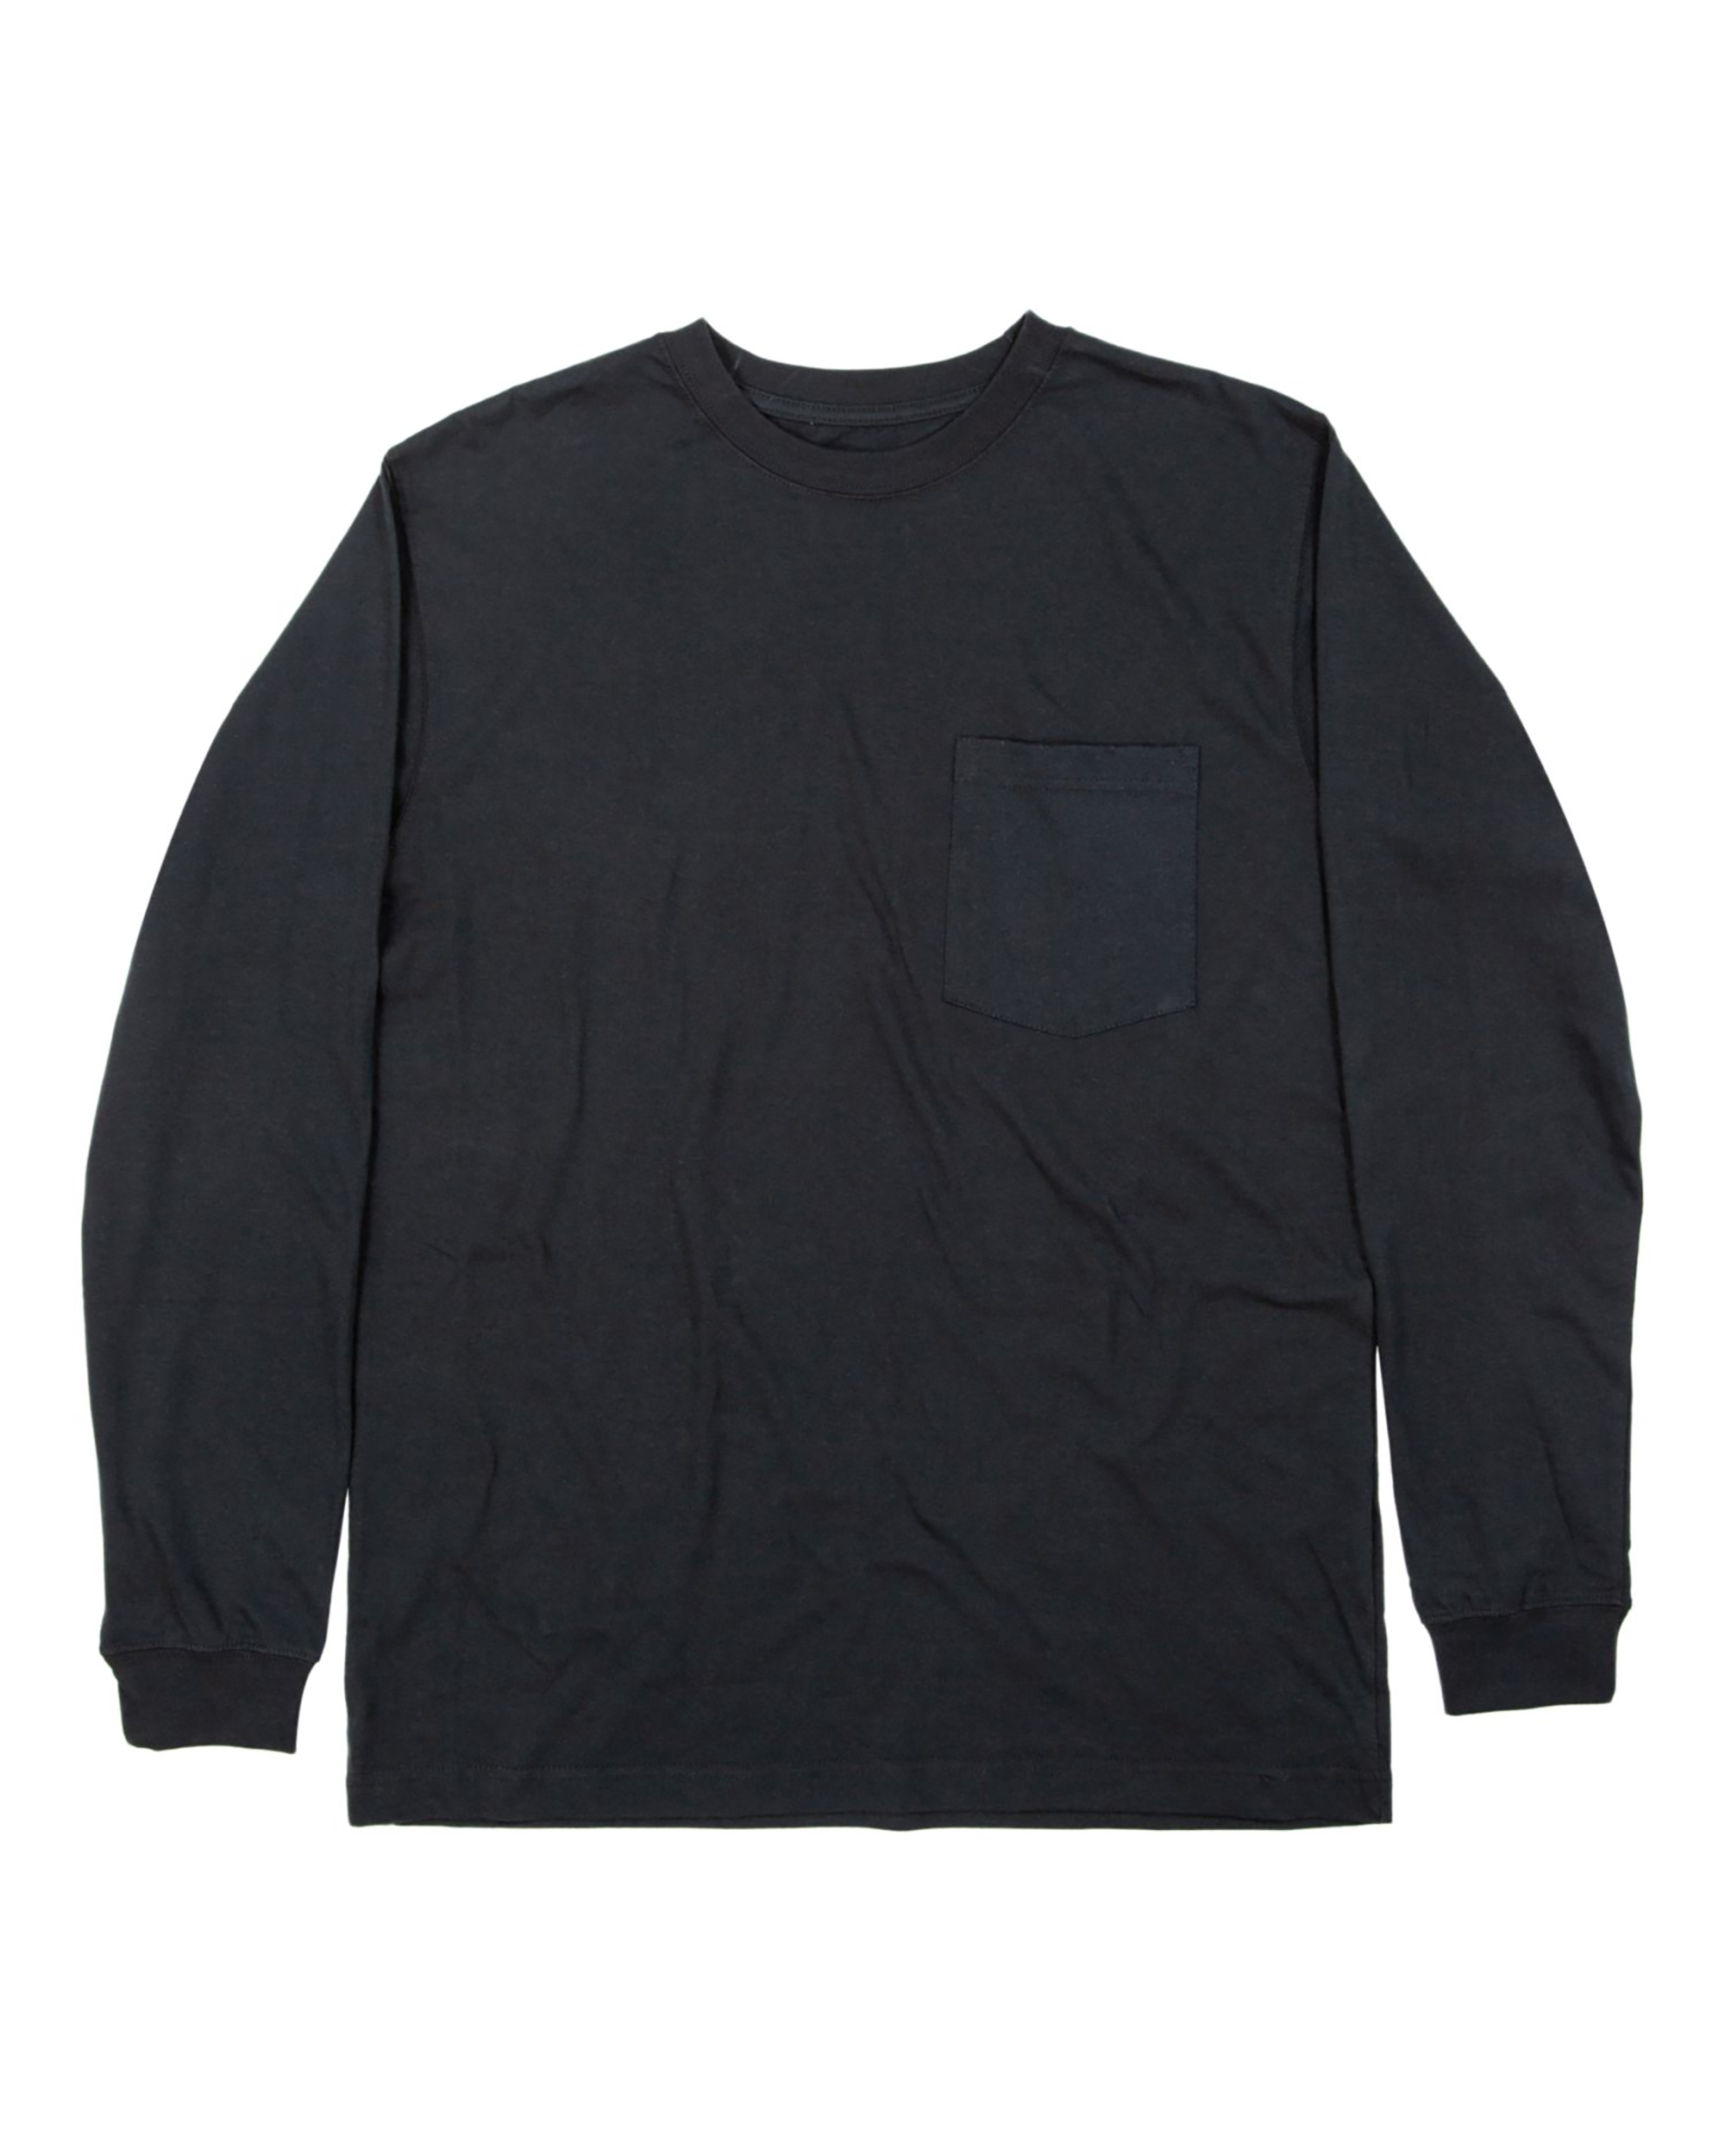 Berne Workwear BSM23 - Heavyweight Long Sleeve Pocket Tee